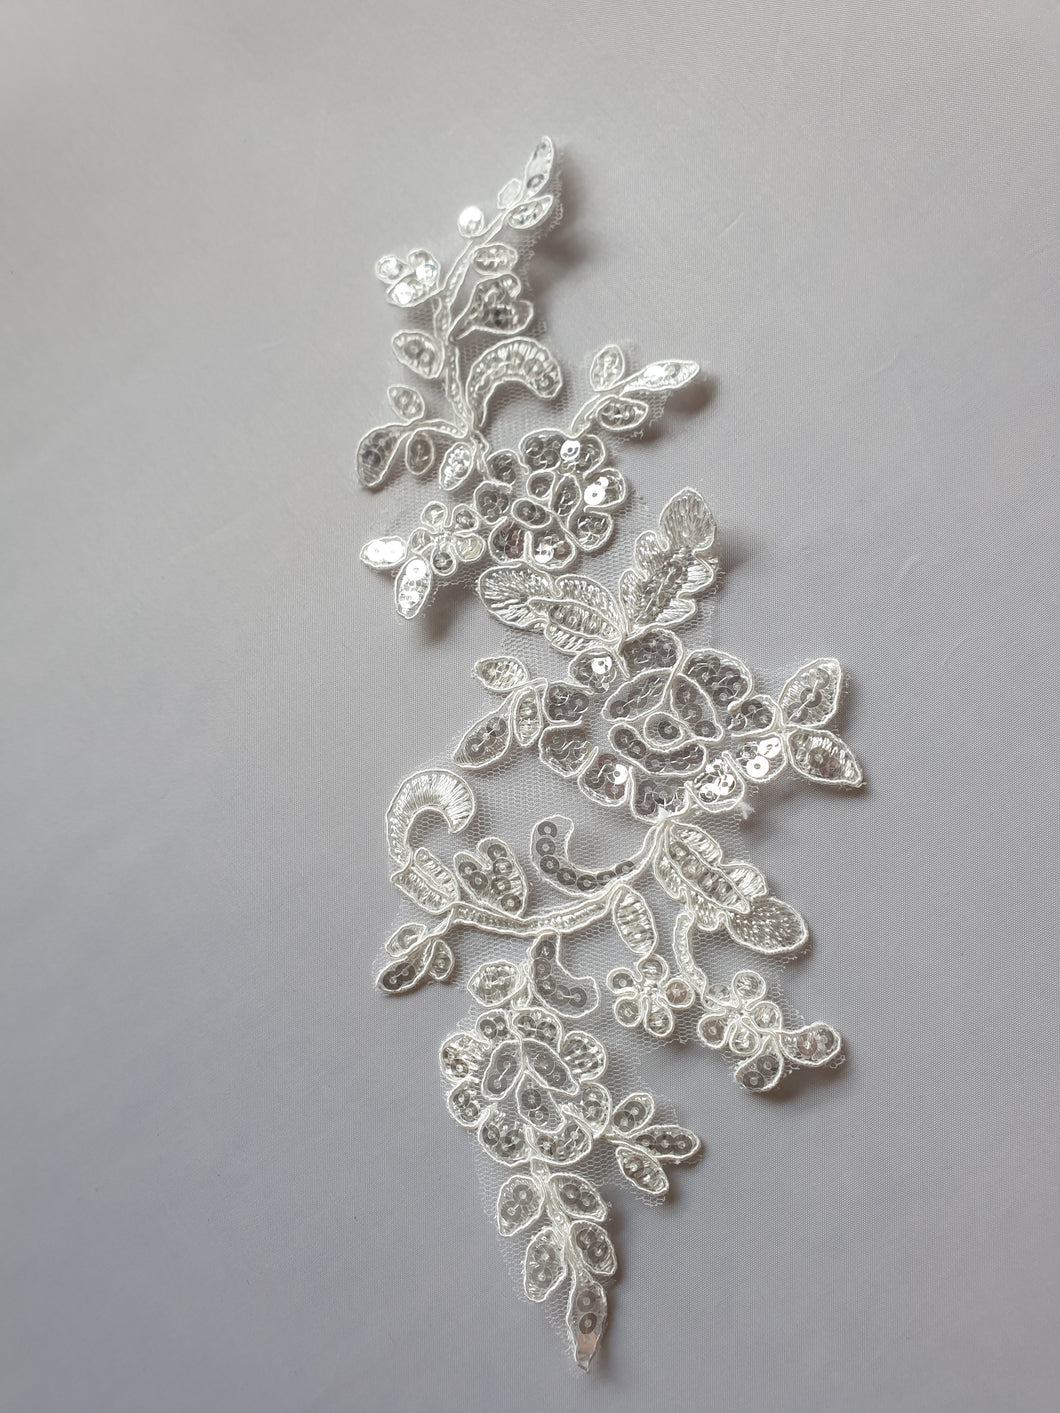 White sequin lace flower motif - In Stock